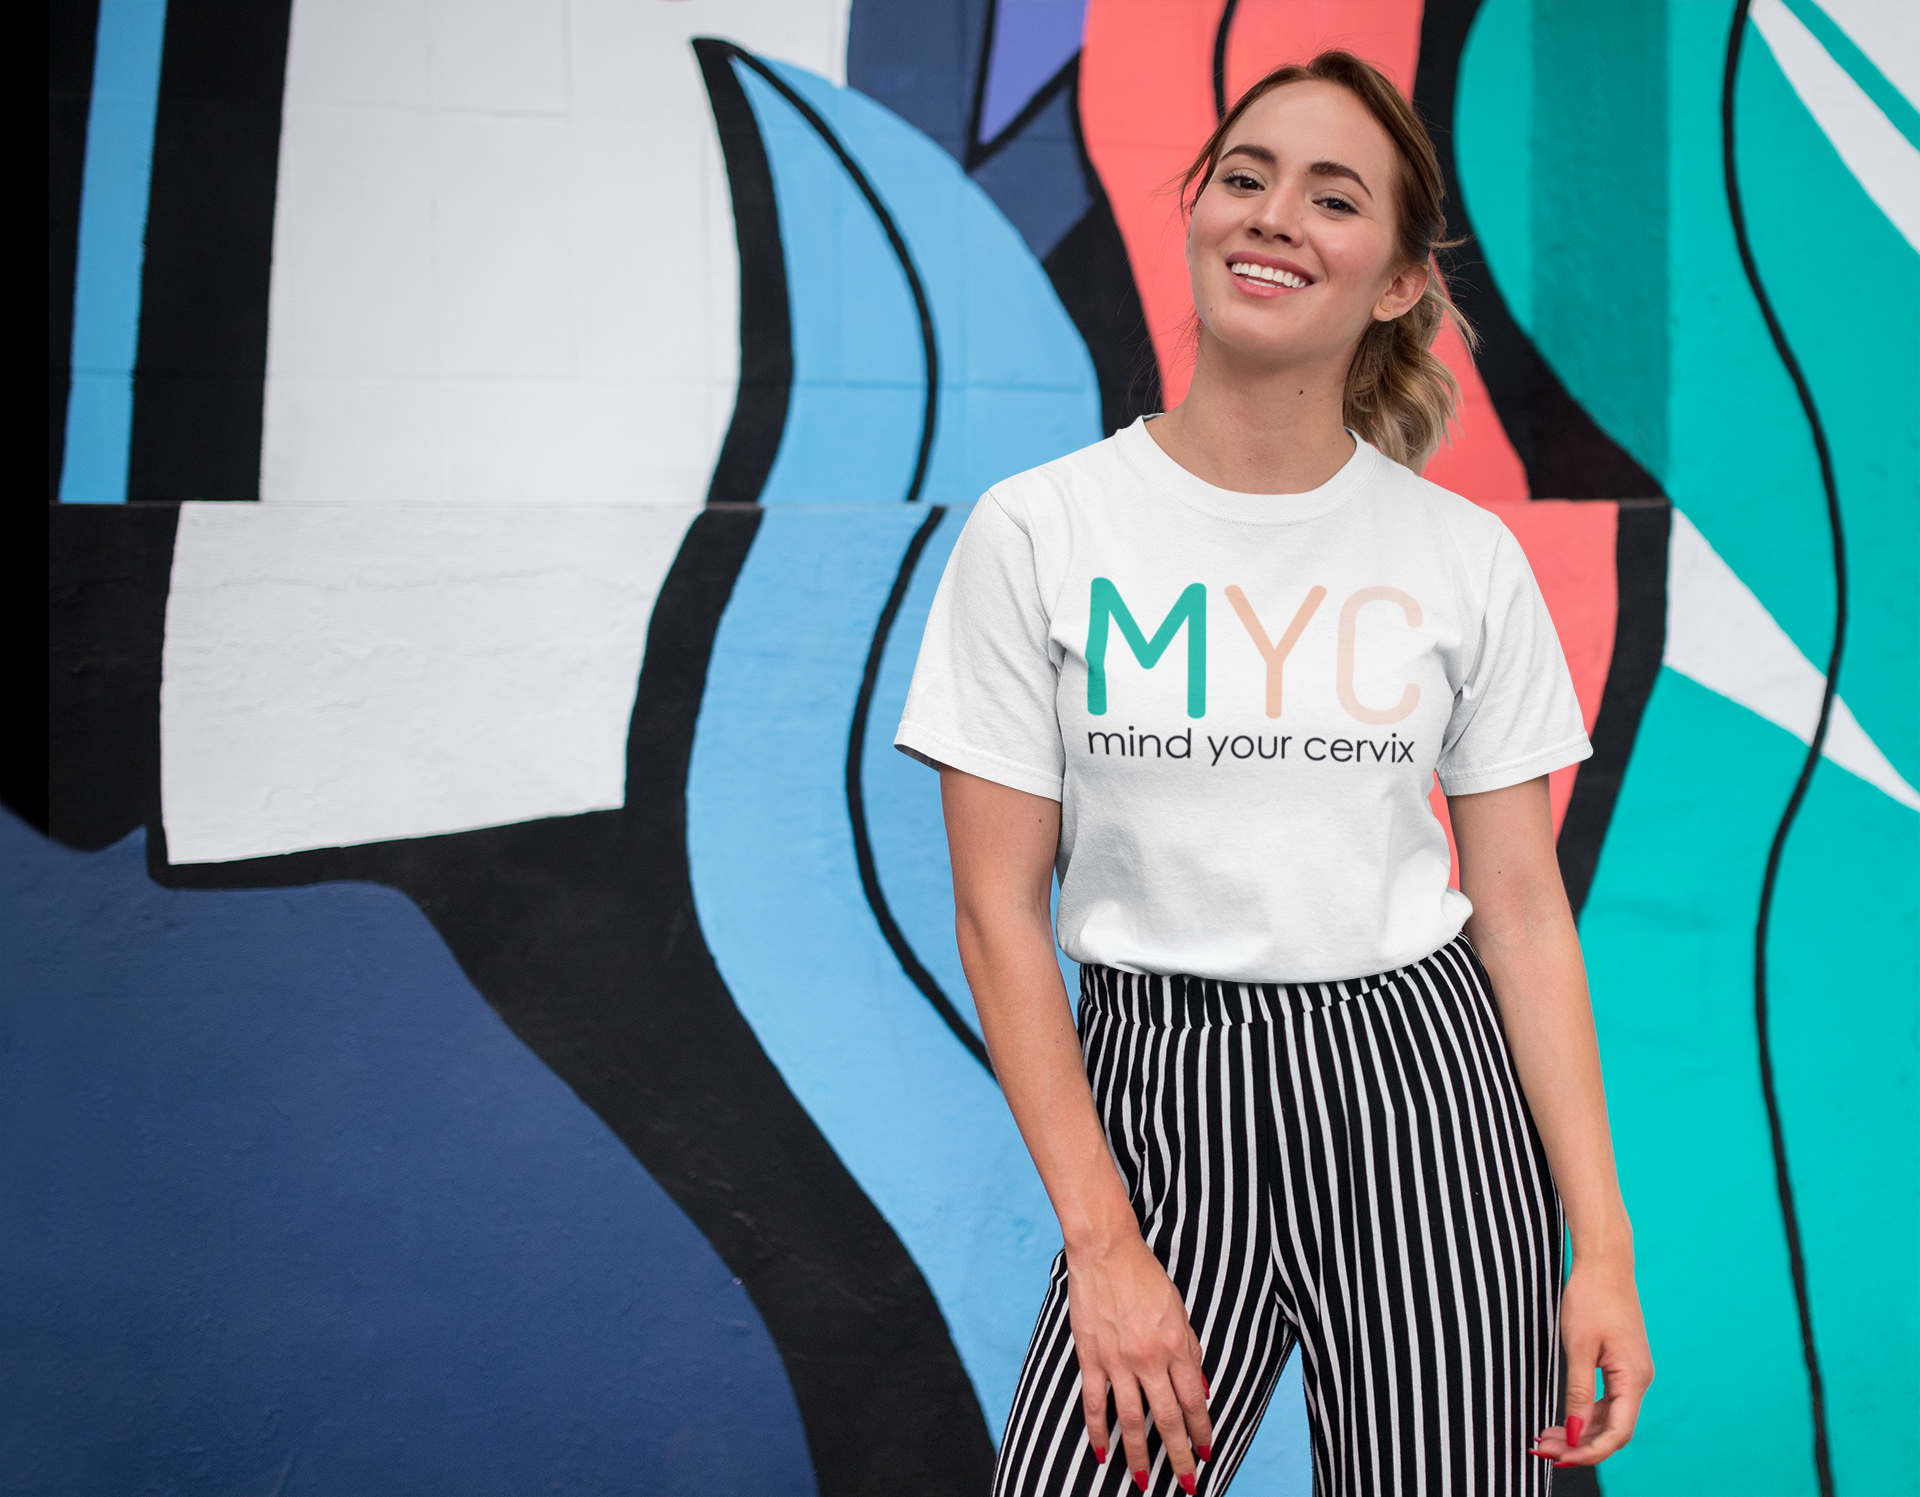 tee-mockup-of-a-smiling-girl-in-front-of-a-wall-with-colorful-illustrations-26646.png